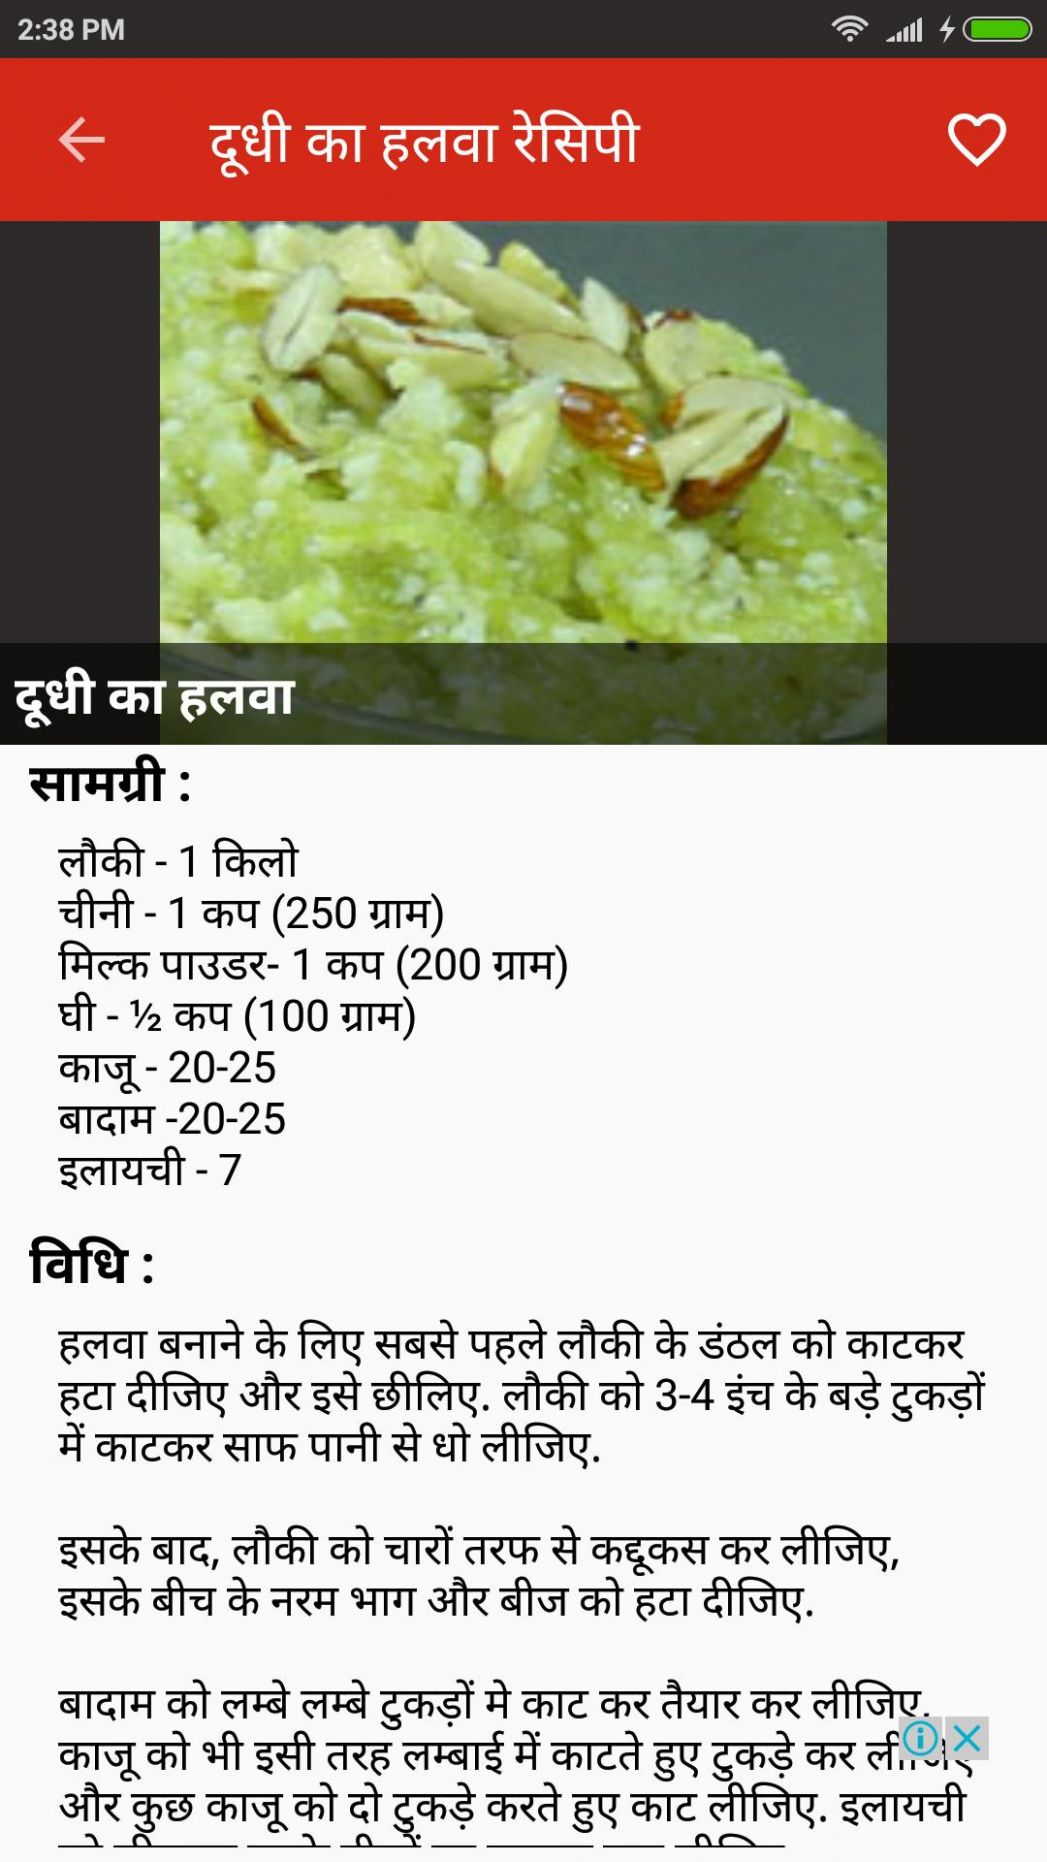 Indian Sweets Recipes Hindi (Offline) for Android - APK Download - Food Recipes Hindi